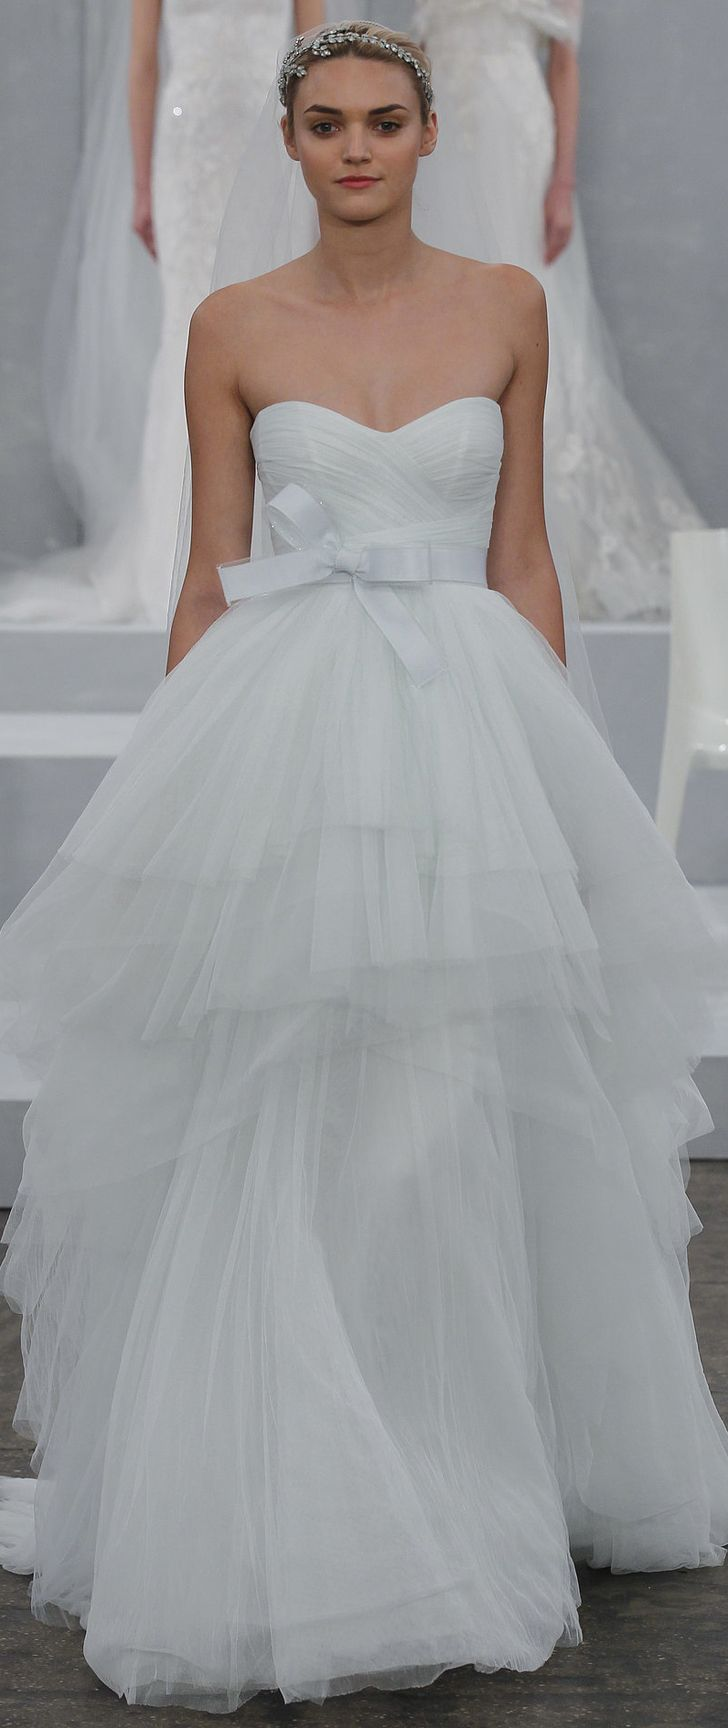 Turn Your Aisle Into a Runway With the 6 Hottest Bridal ...